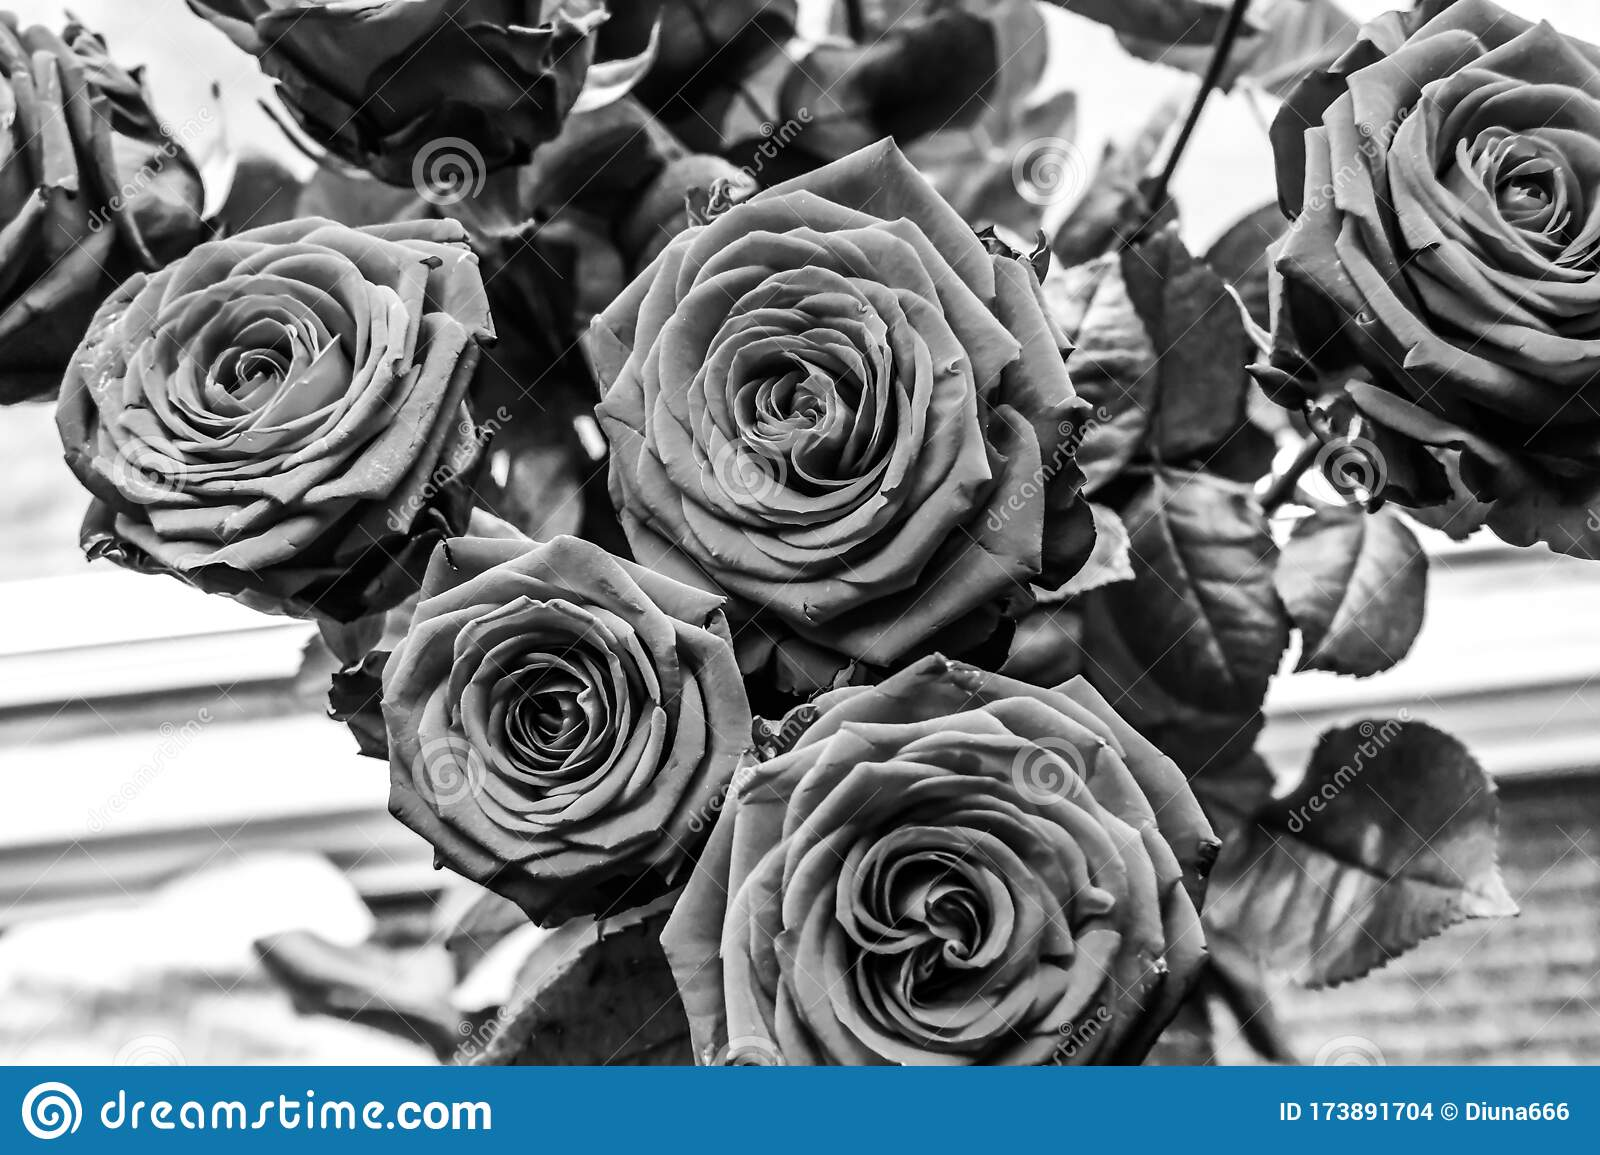 Bouquet Of Red Roses Black And White Picture Stock Photo Image Of Garden Roses 173891704